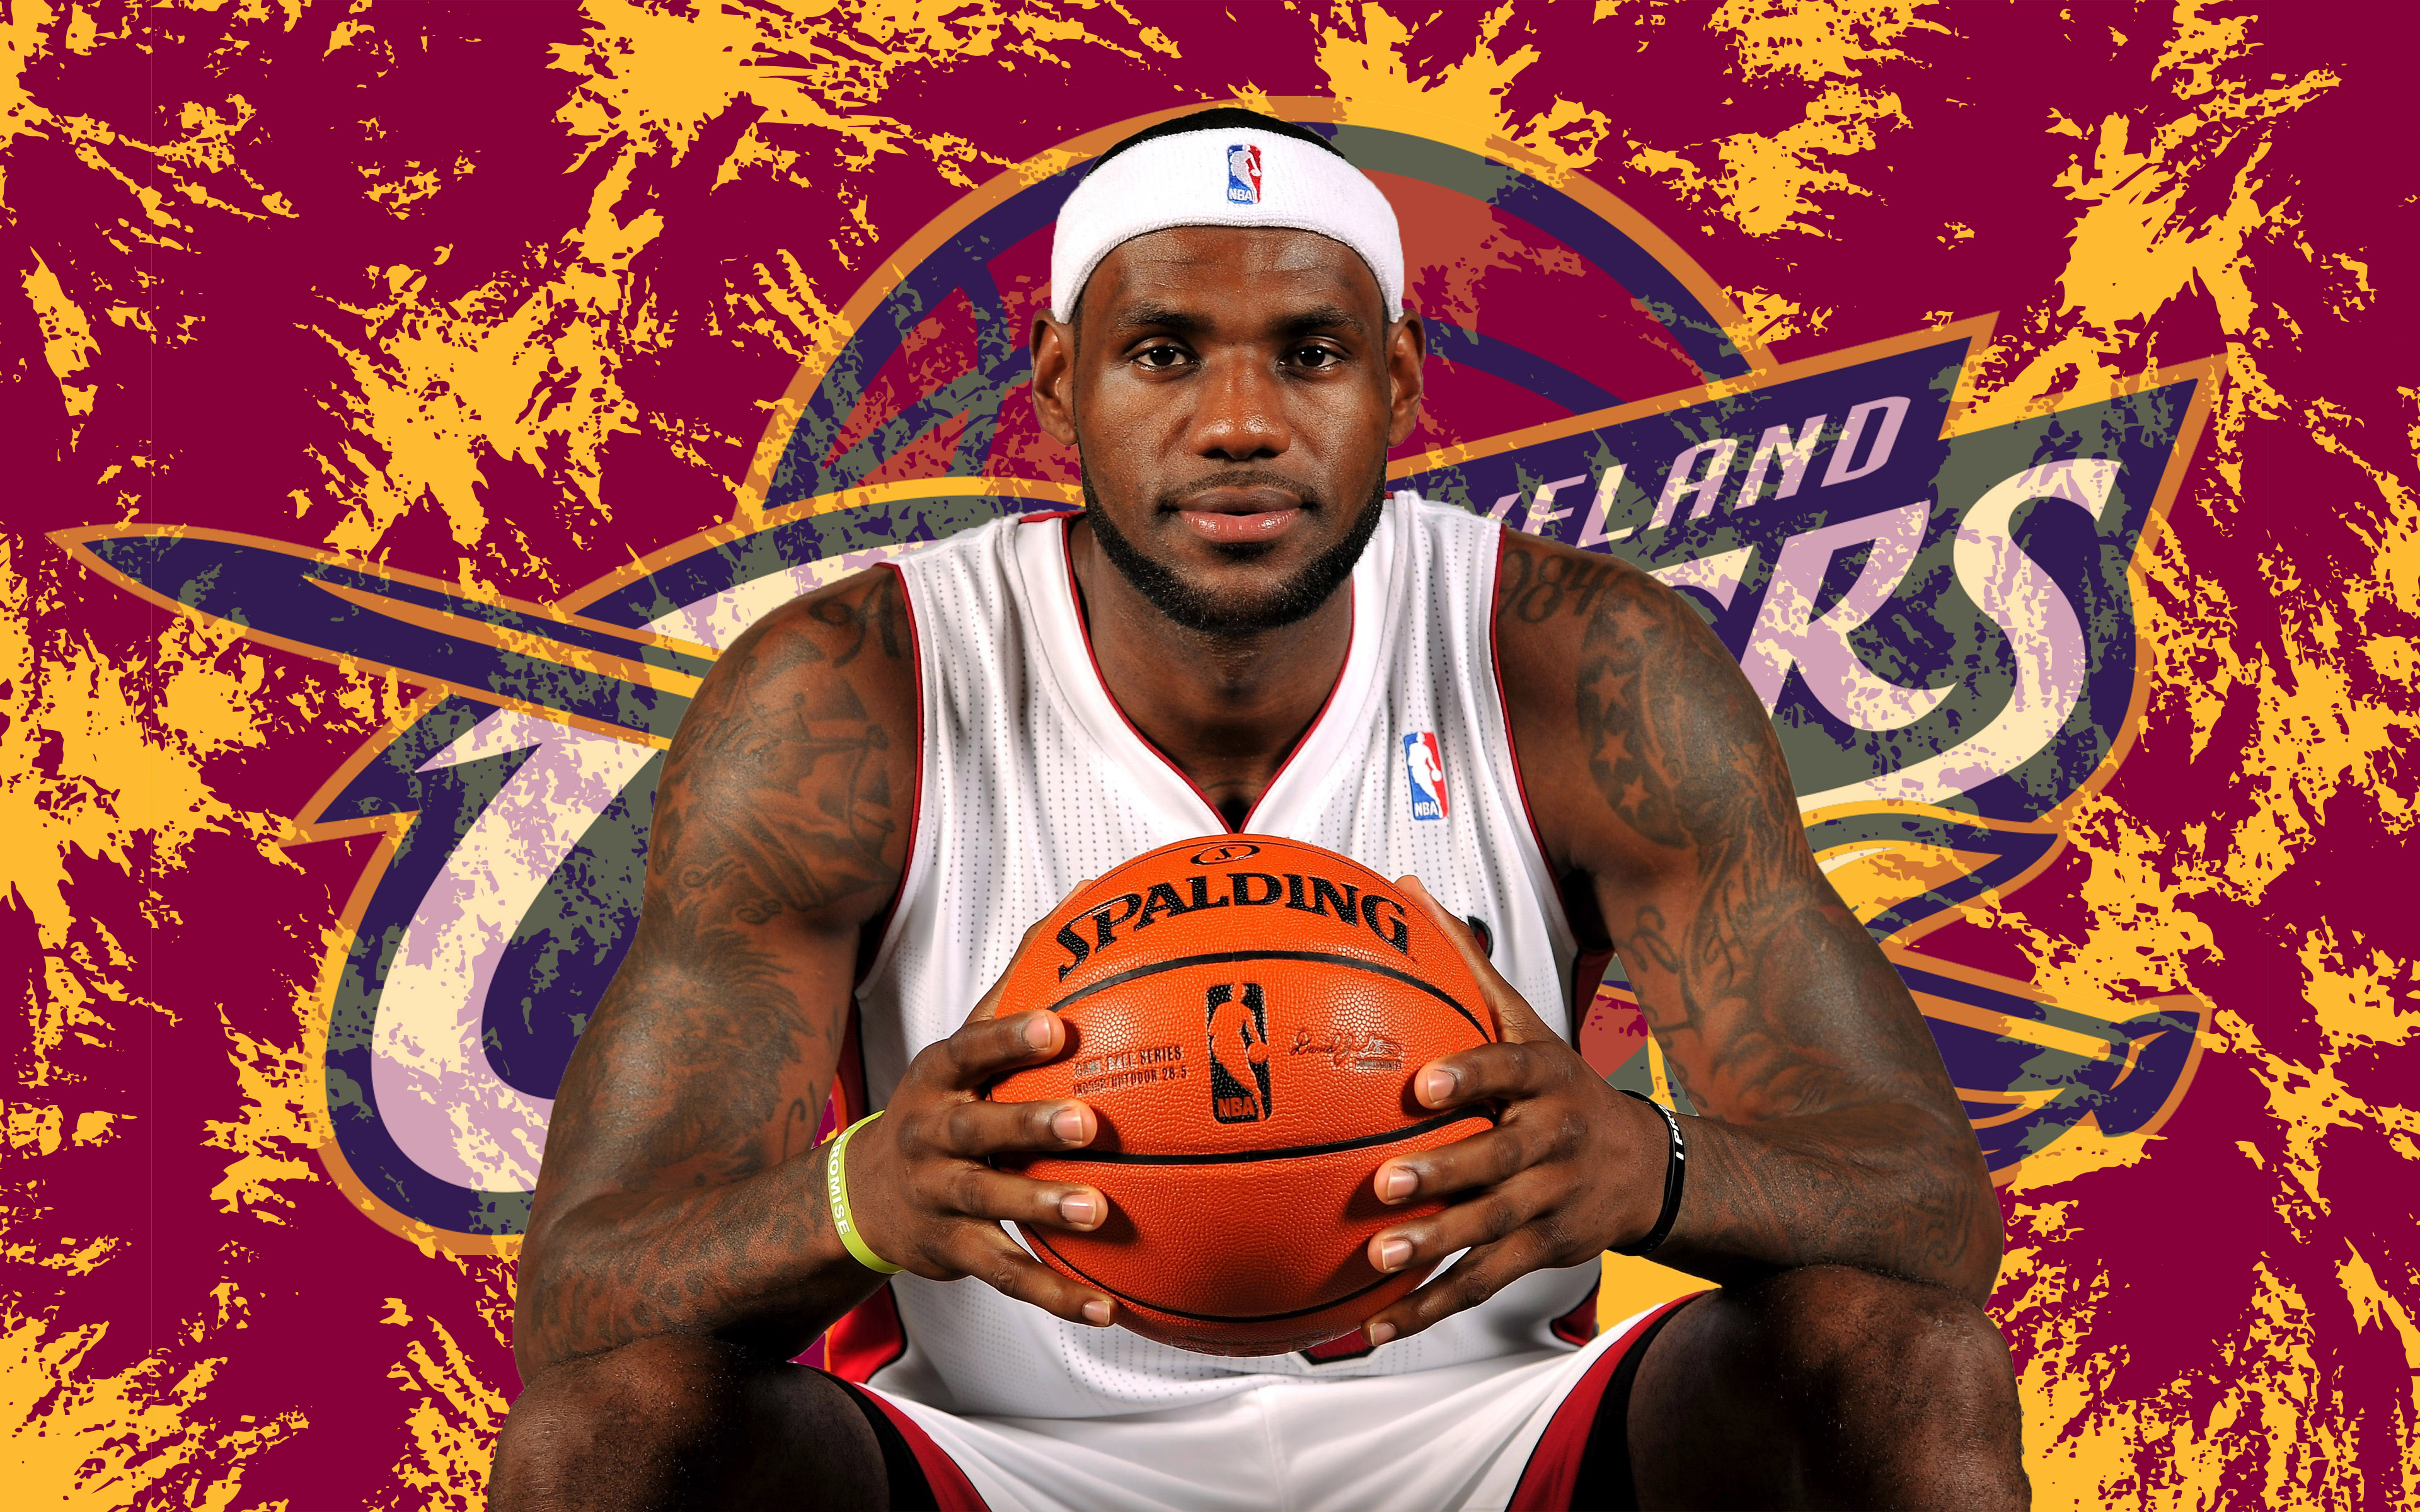 Lebron James Wallpaper 3840x2400 63535